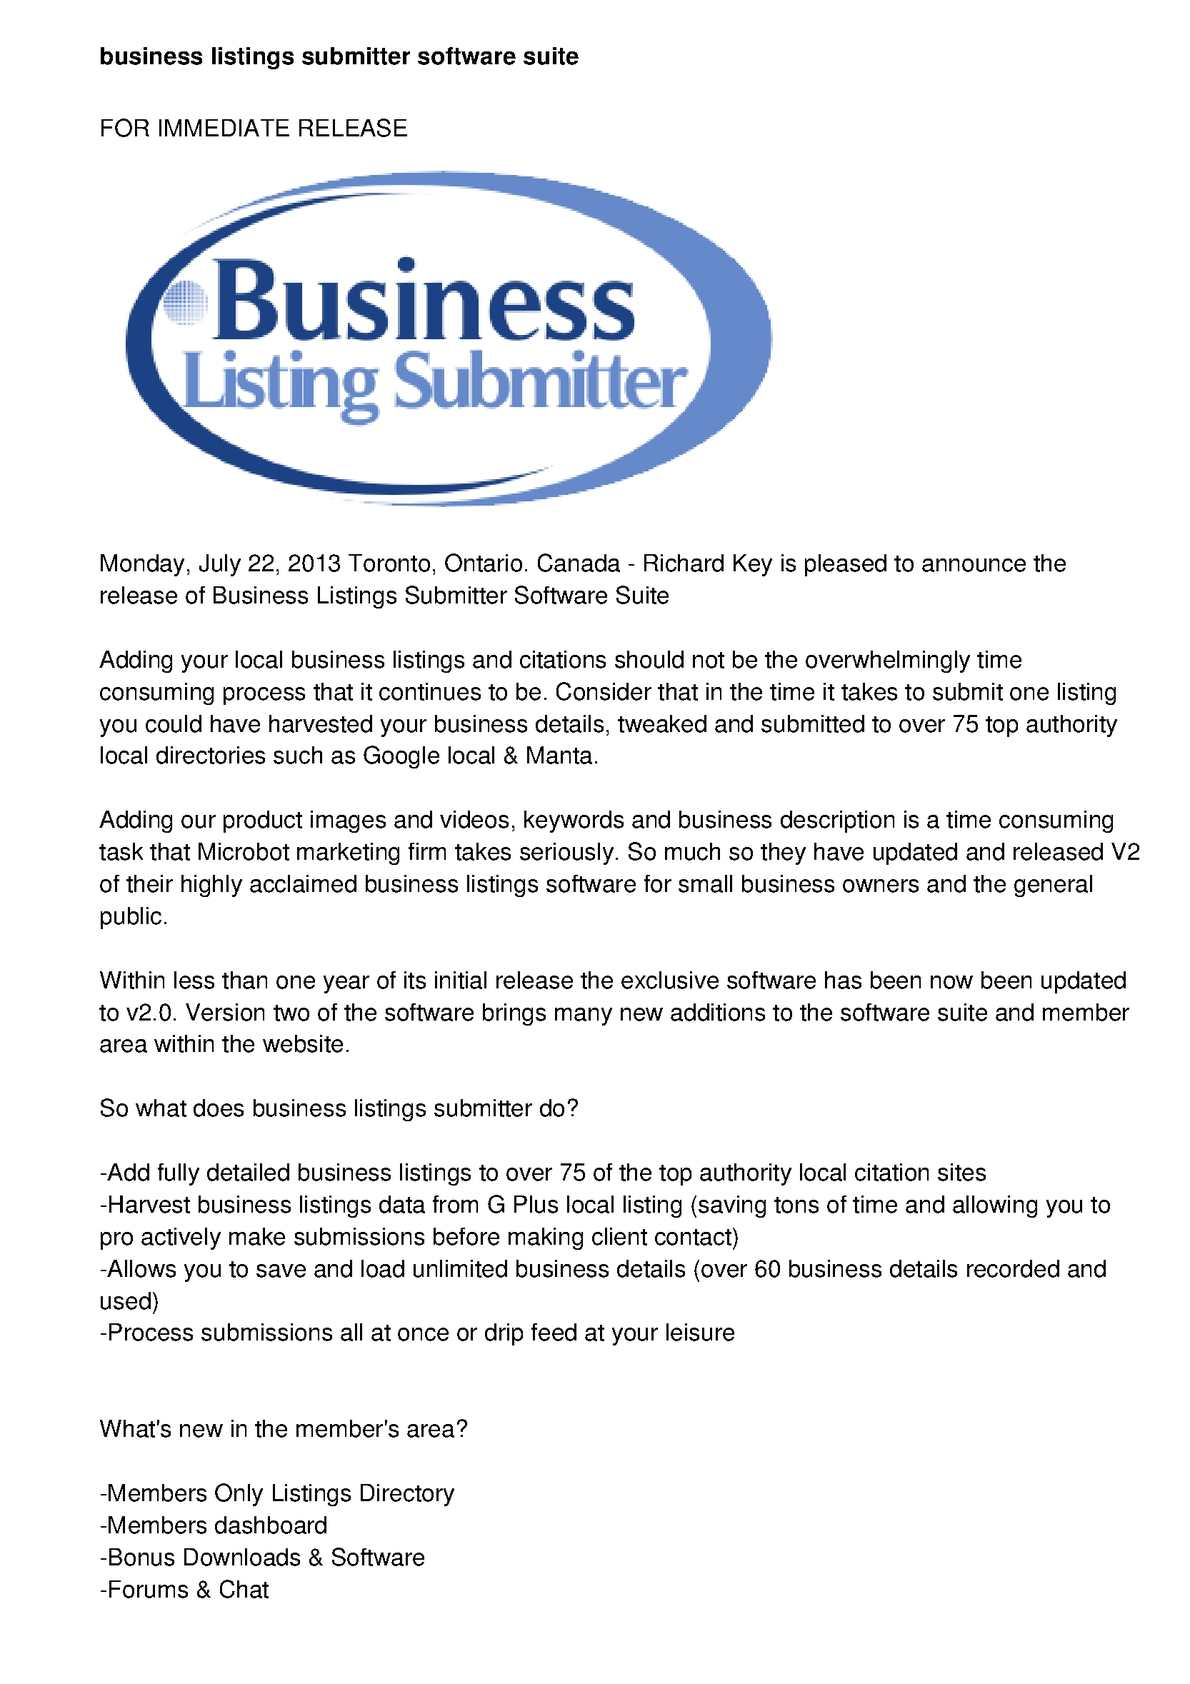 Calaméo - Business Listings Submitter Software Suite Rolls Out